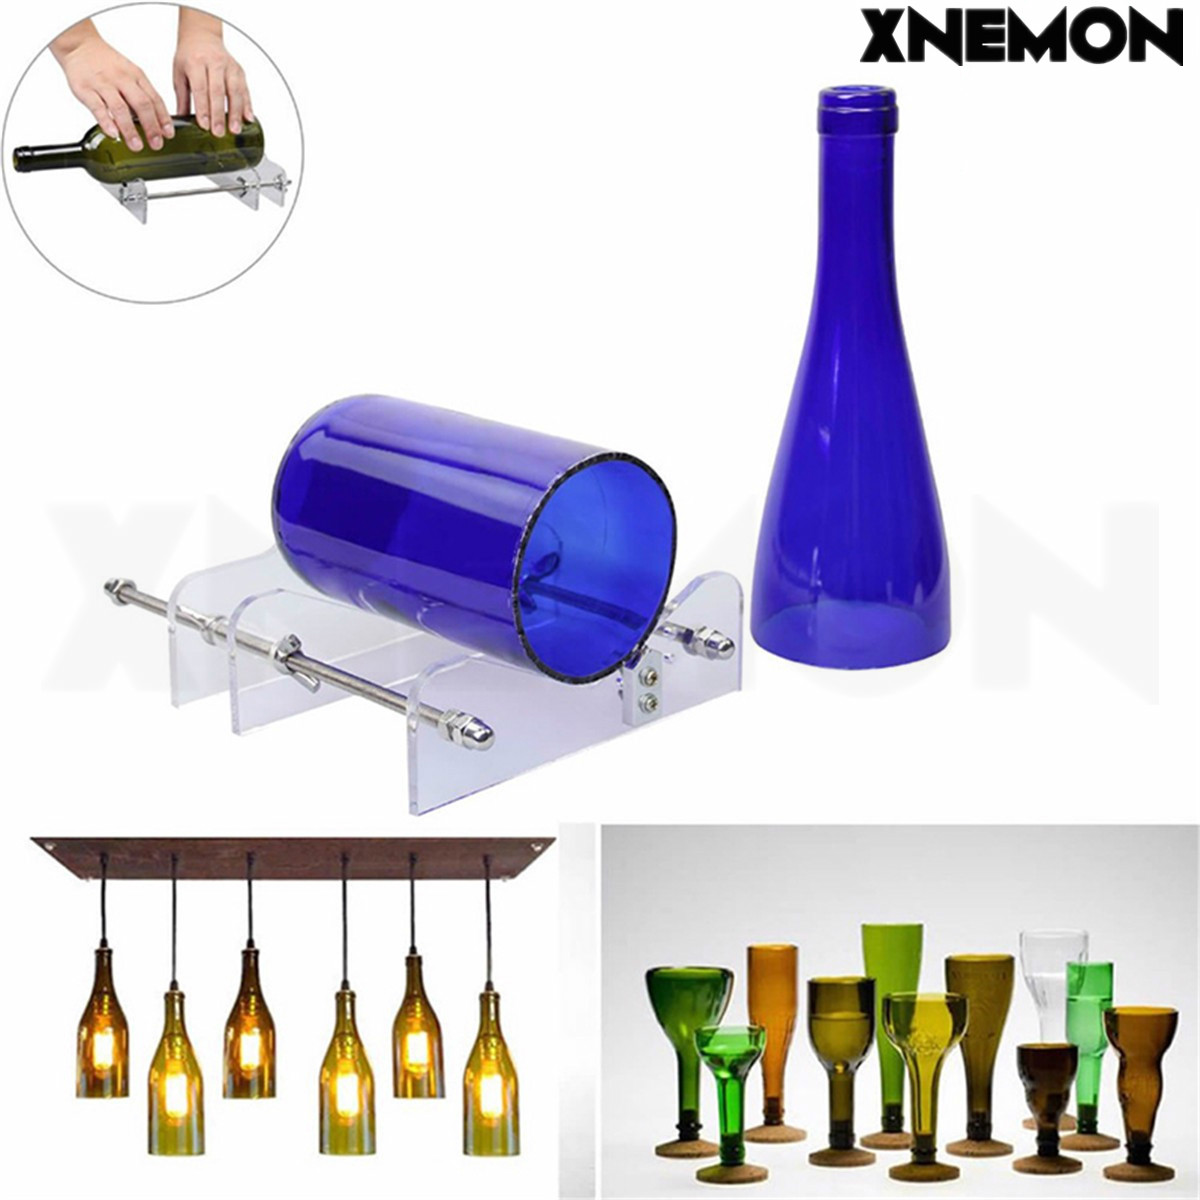 XNEMON New DIY Glass Wine Bottle Cutter Cutting Machine Jar Kit Craft Machine Recycle Tool High Quality Safety Glass Tool best price mgehr1212 2 slot cutter external grooving tool holder turning tool no insert hot sale brand new